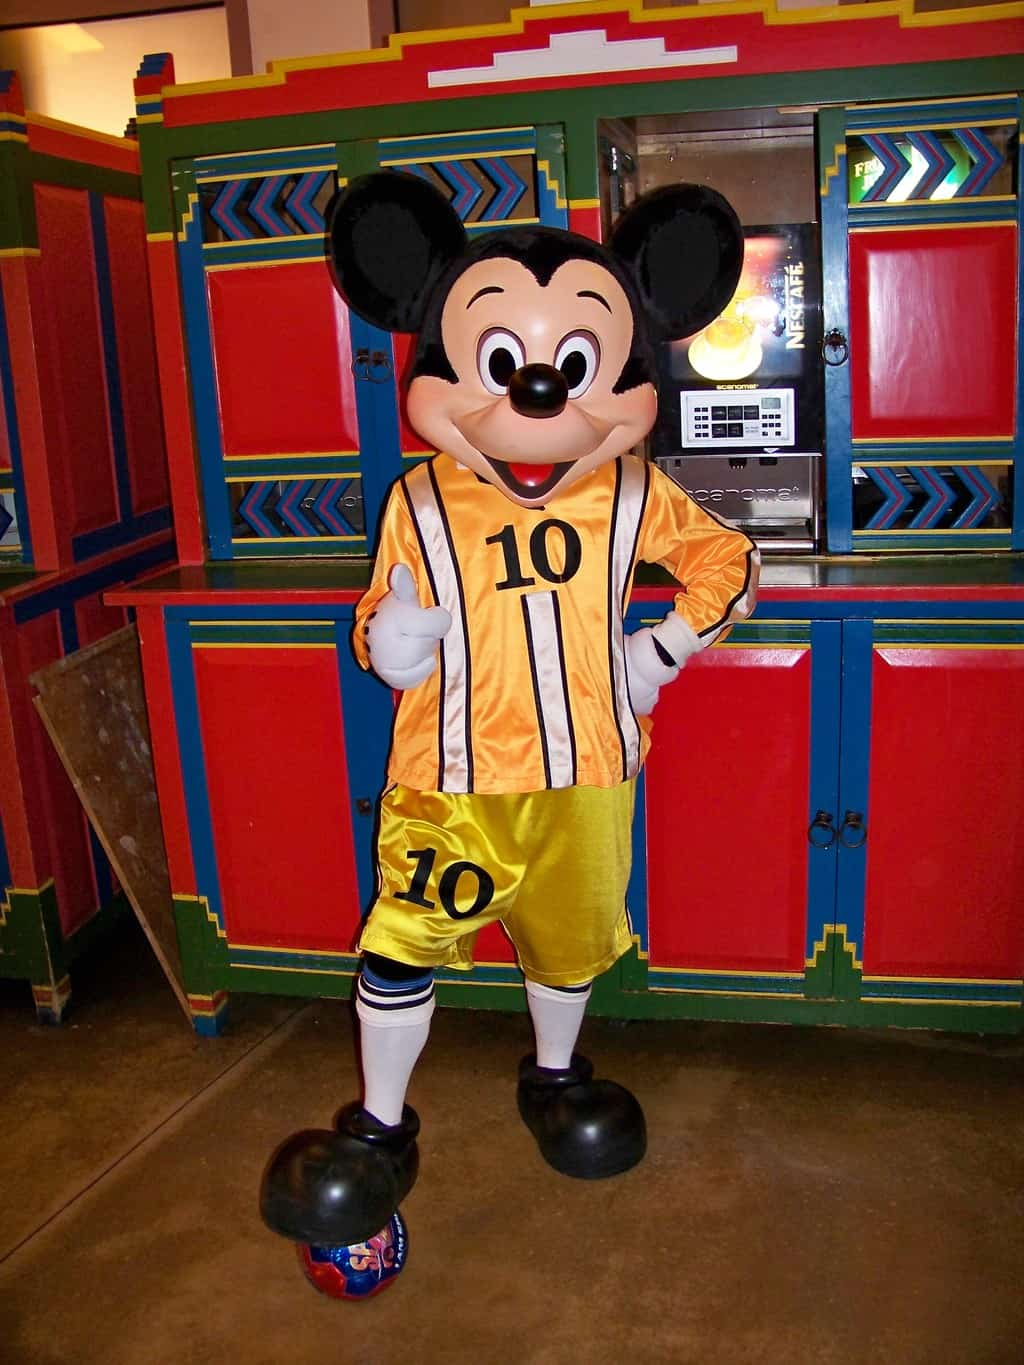 During the European Soccer Championship 2008 Mickey visited guests at the Disney's Santa Fe Hotel wearing a soccer outfit.